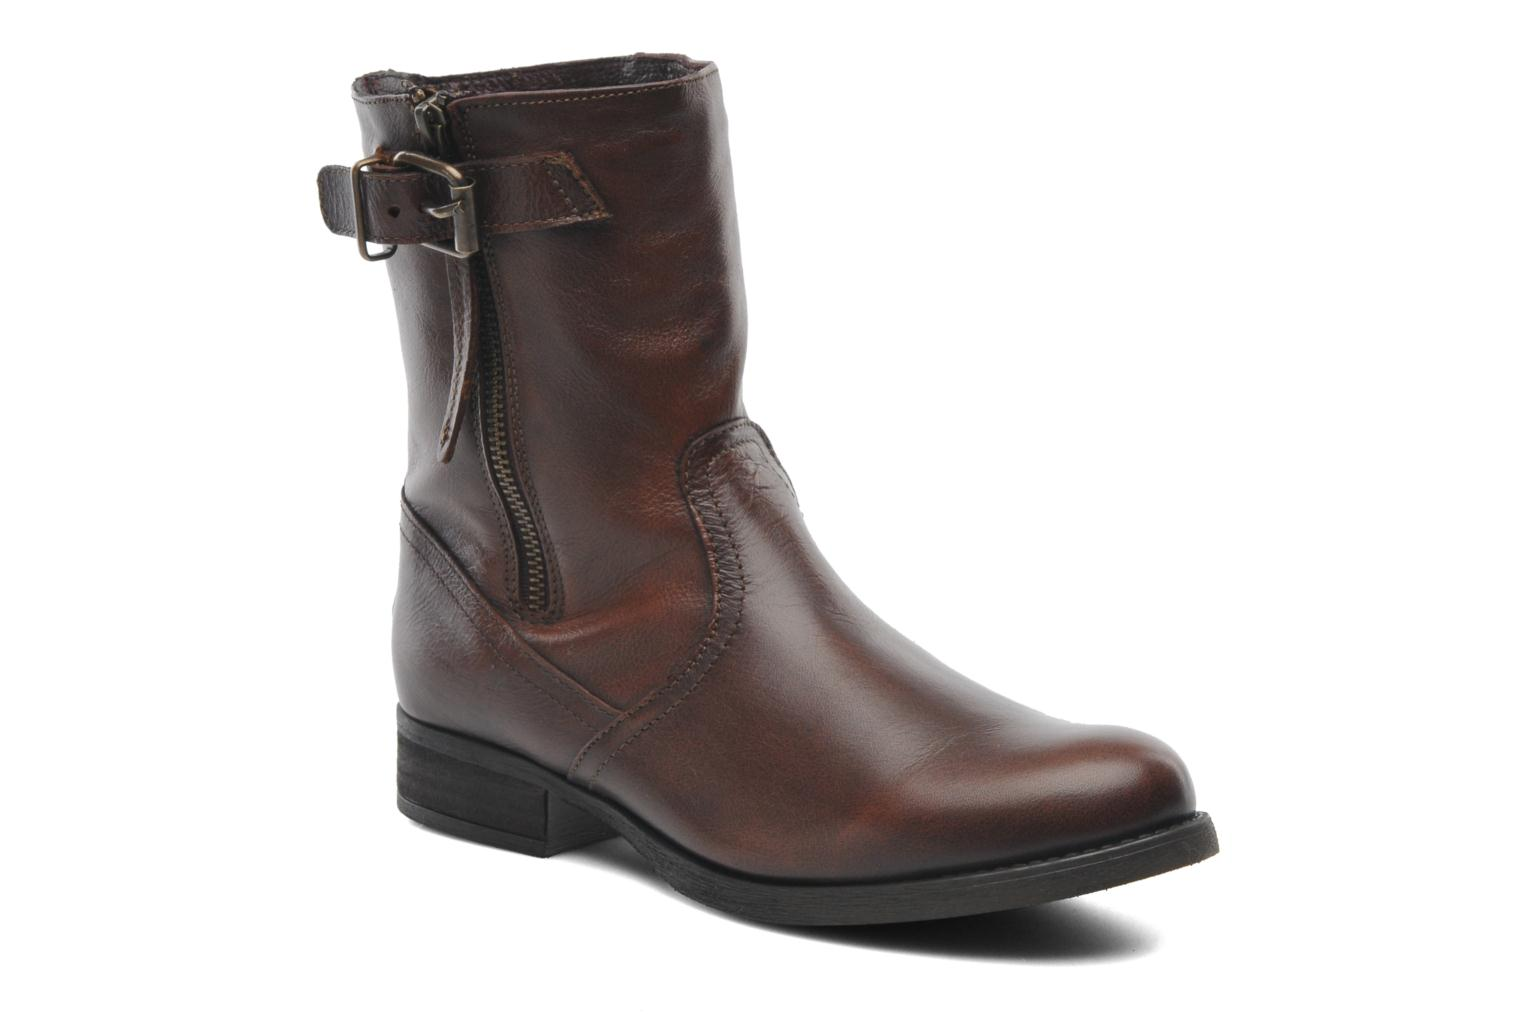 Artic Brown leather